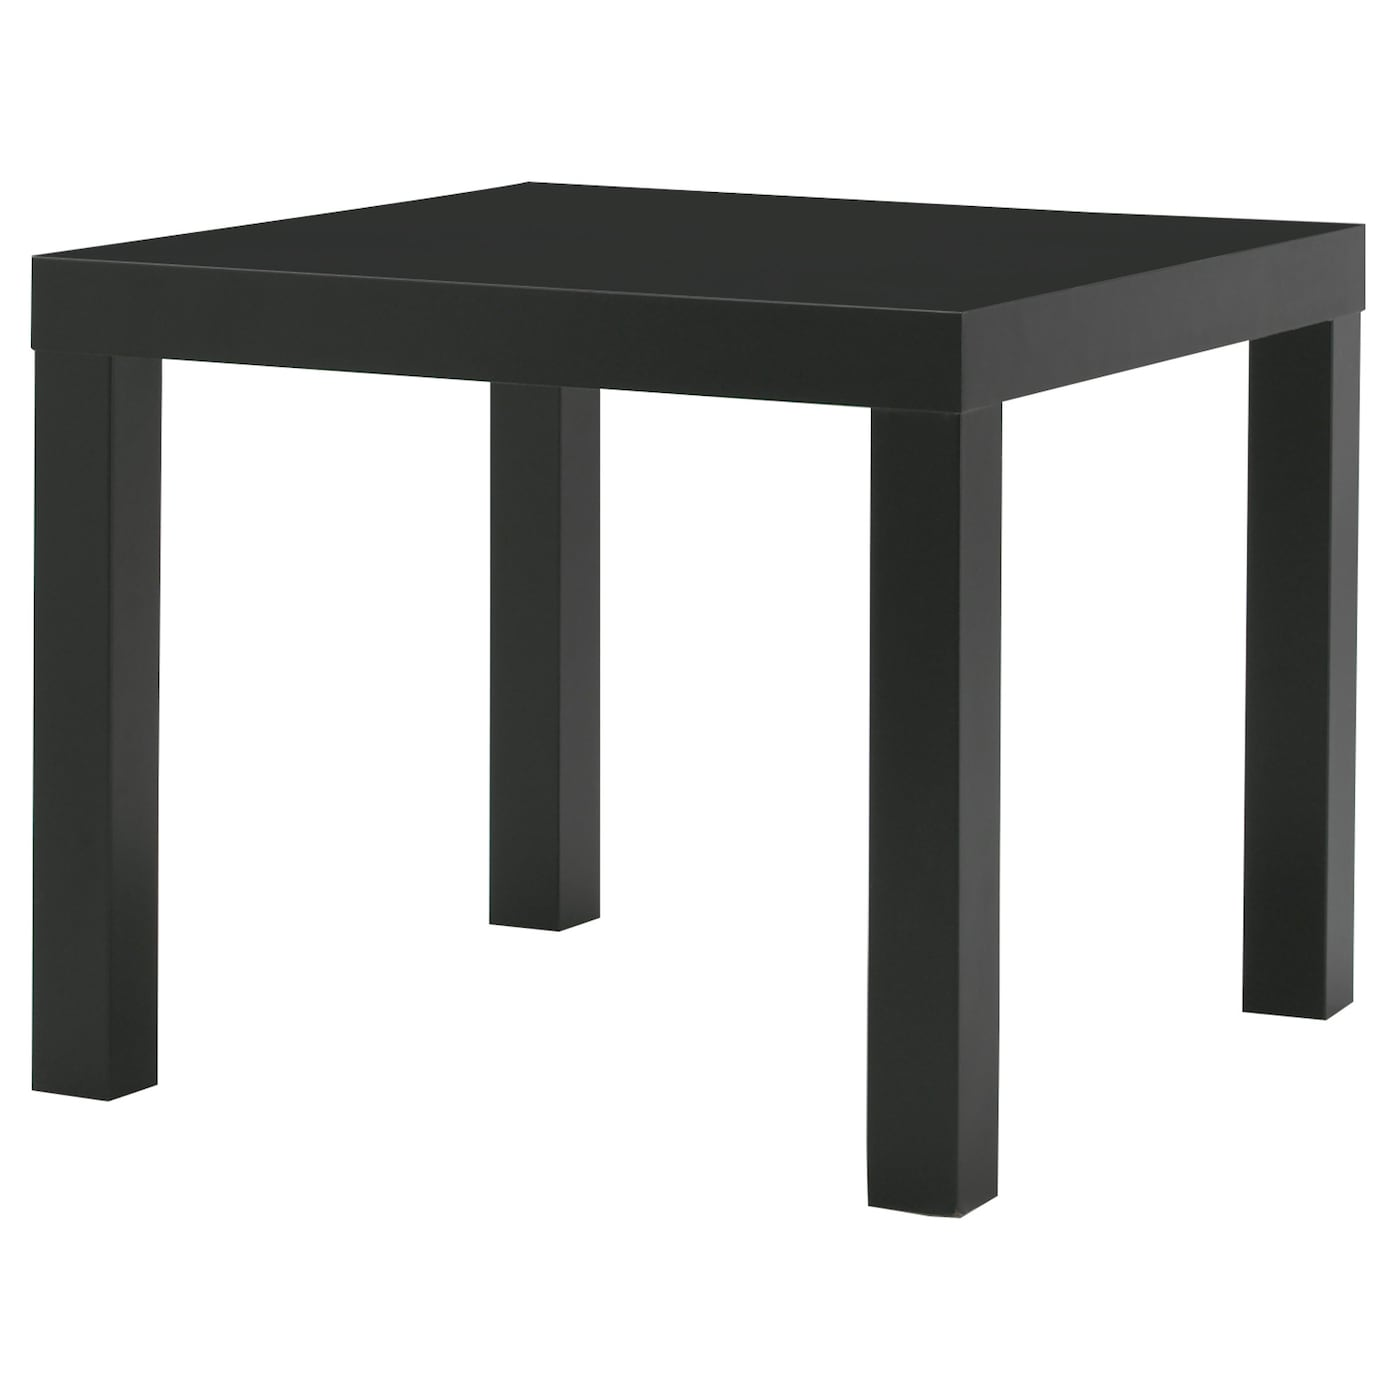 Ikea tables dining tables - Table basse escamotable ikea ...